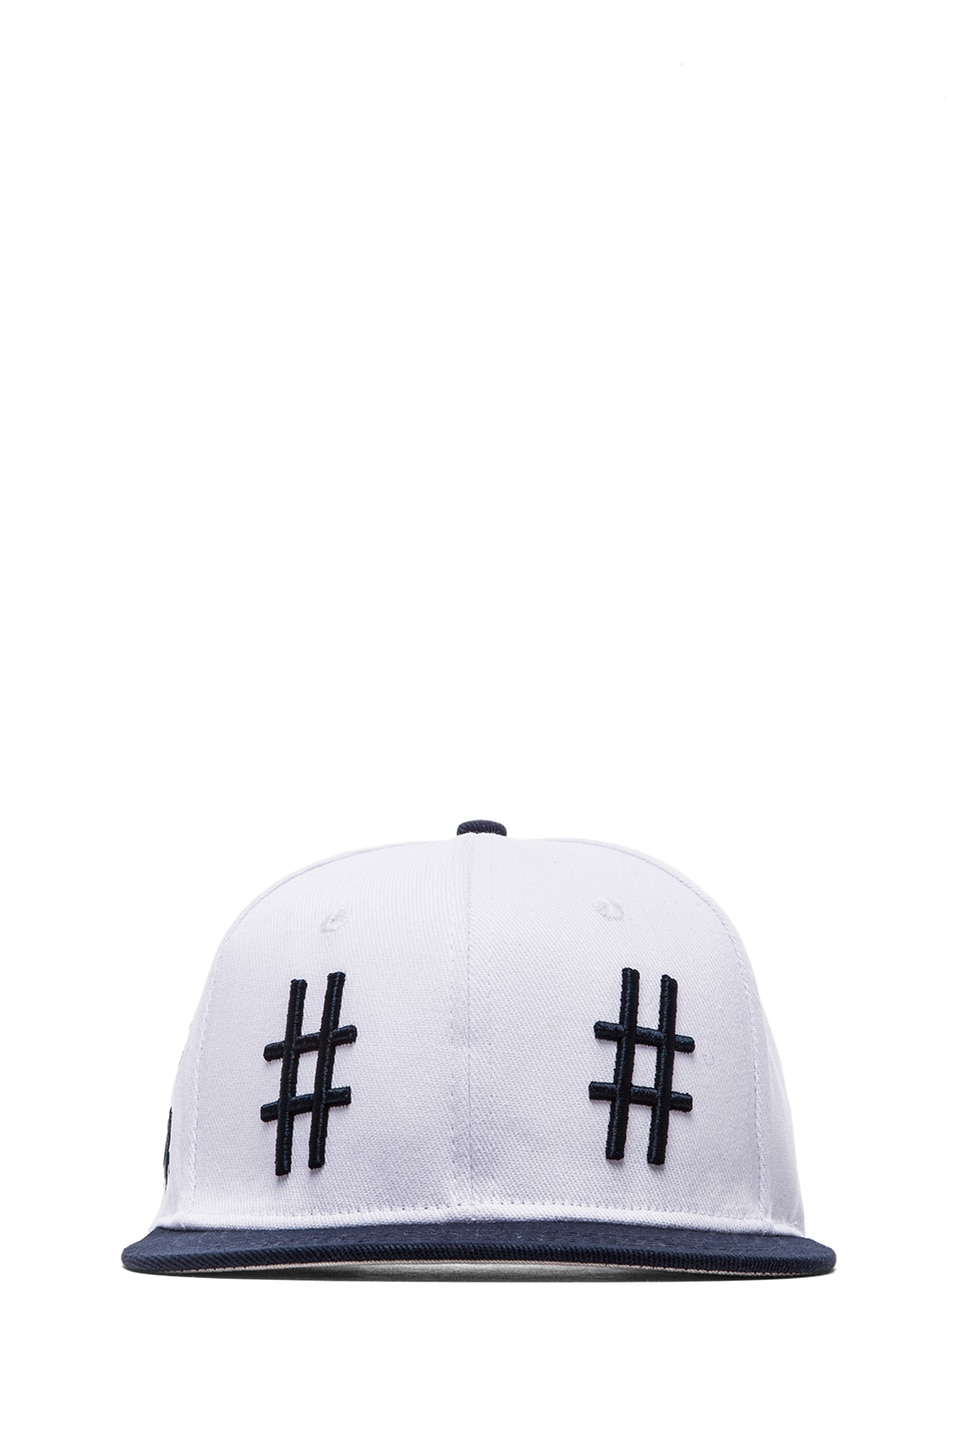 Been Trill Team Hat in White and Navy